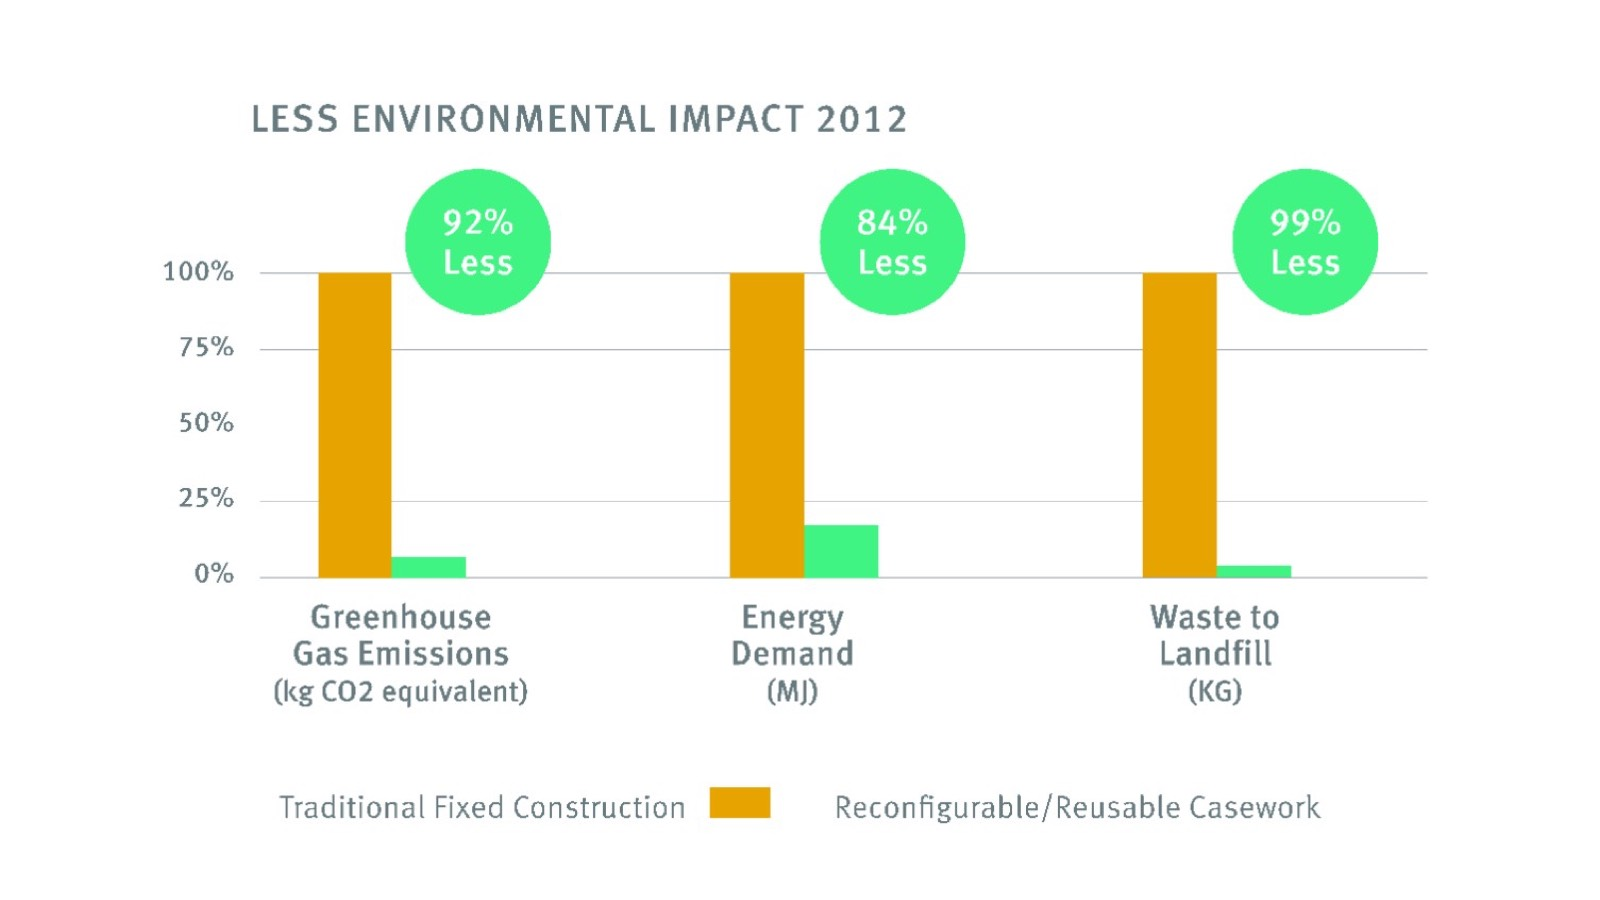 A graph displaying environmental impact of tradtional fixed construction.